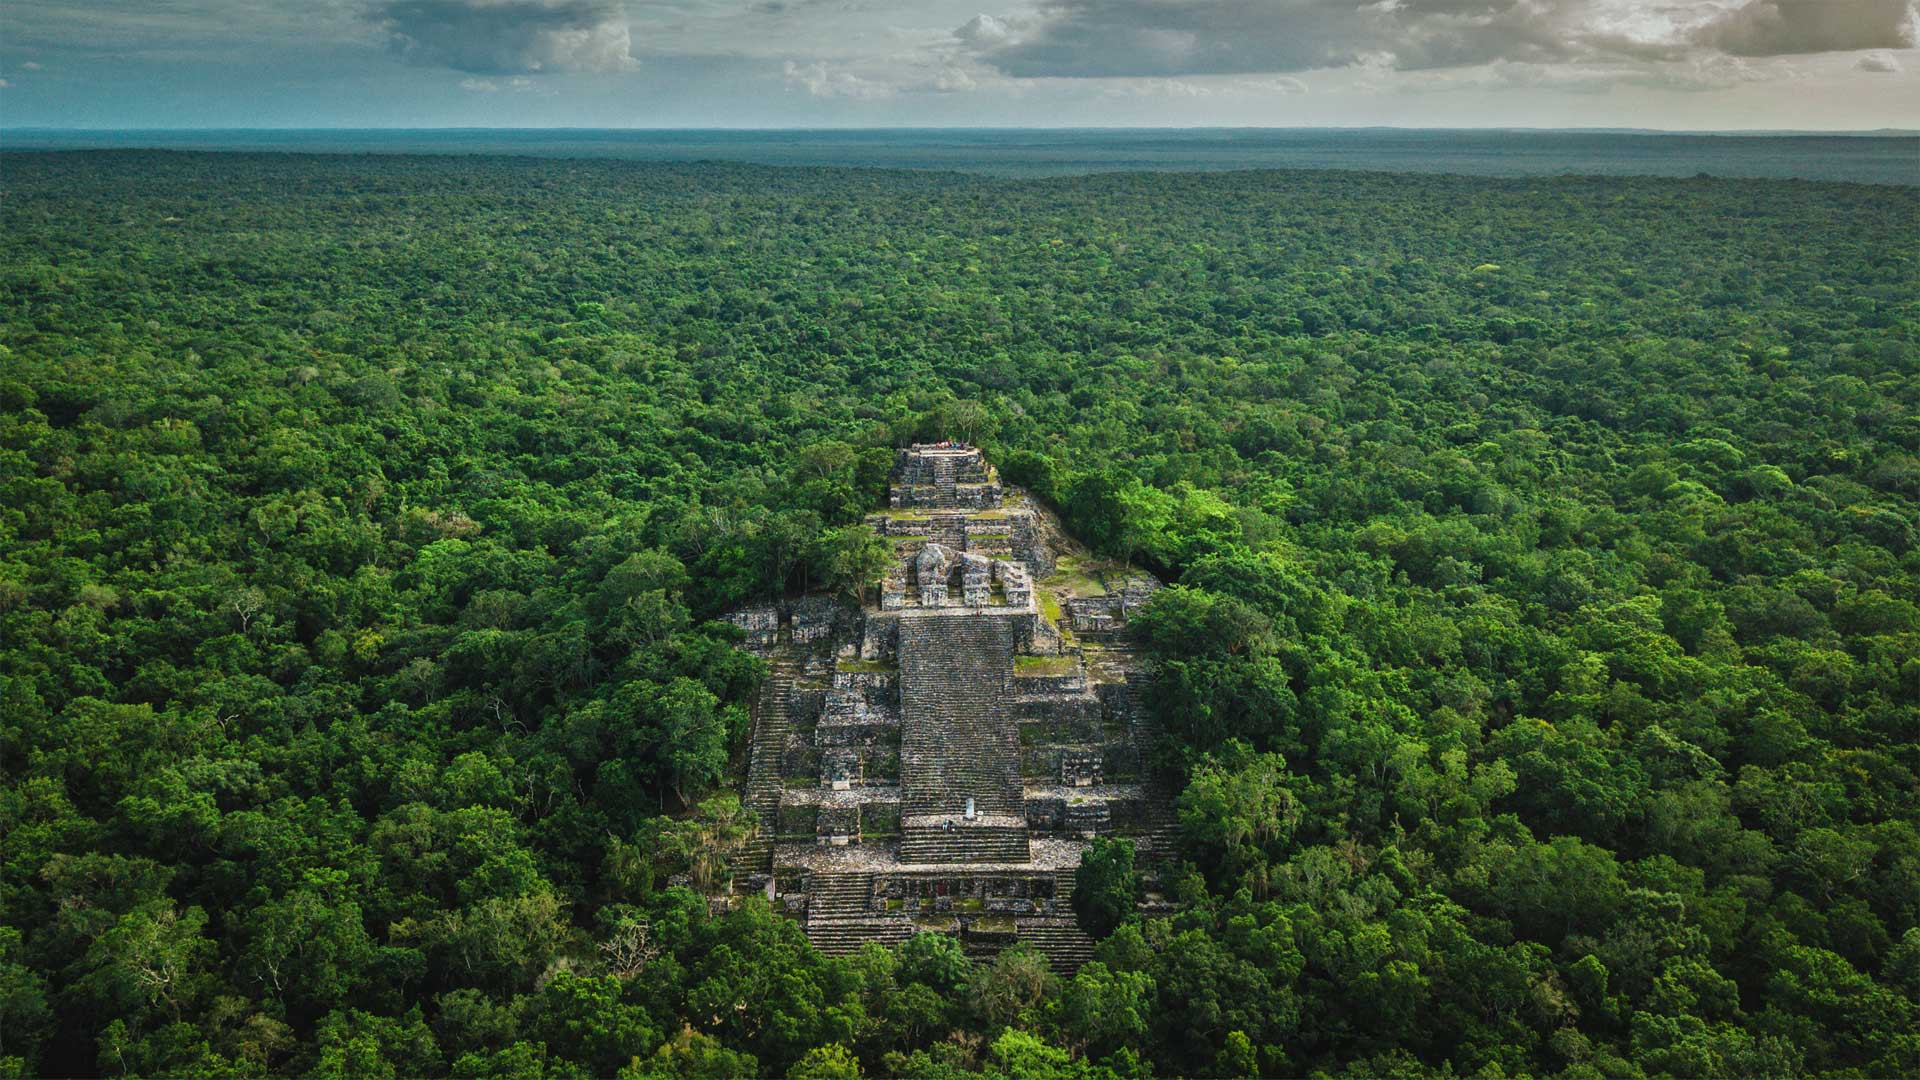 Ruins of the ancient Maya city of Calakmul surrounded by jungle in Campeche, Mexico (© Alfredo Matus/Shutterstock)(Bing United States)